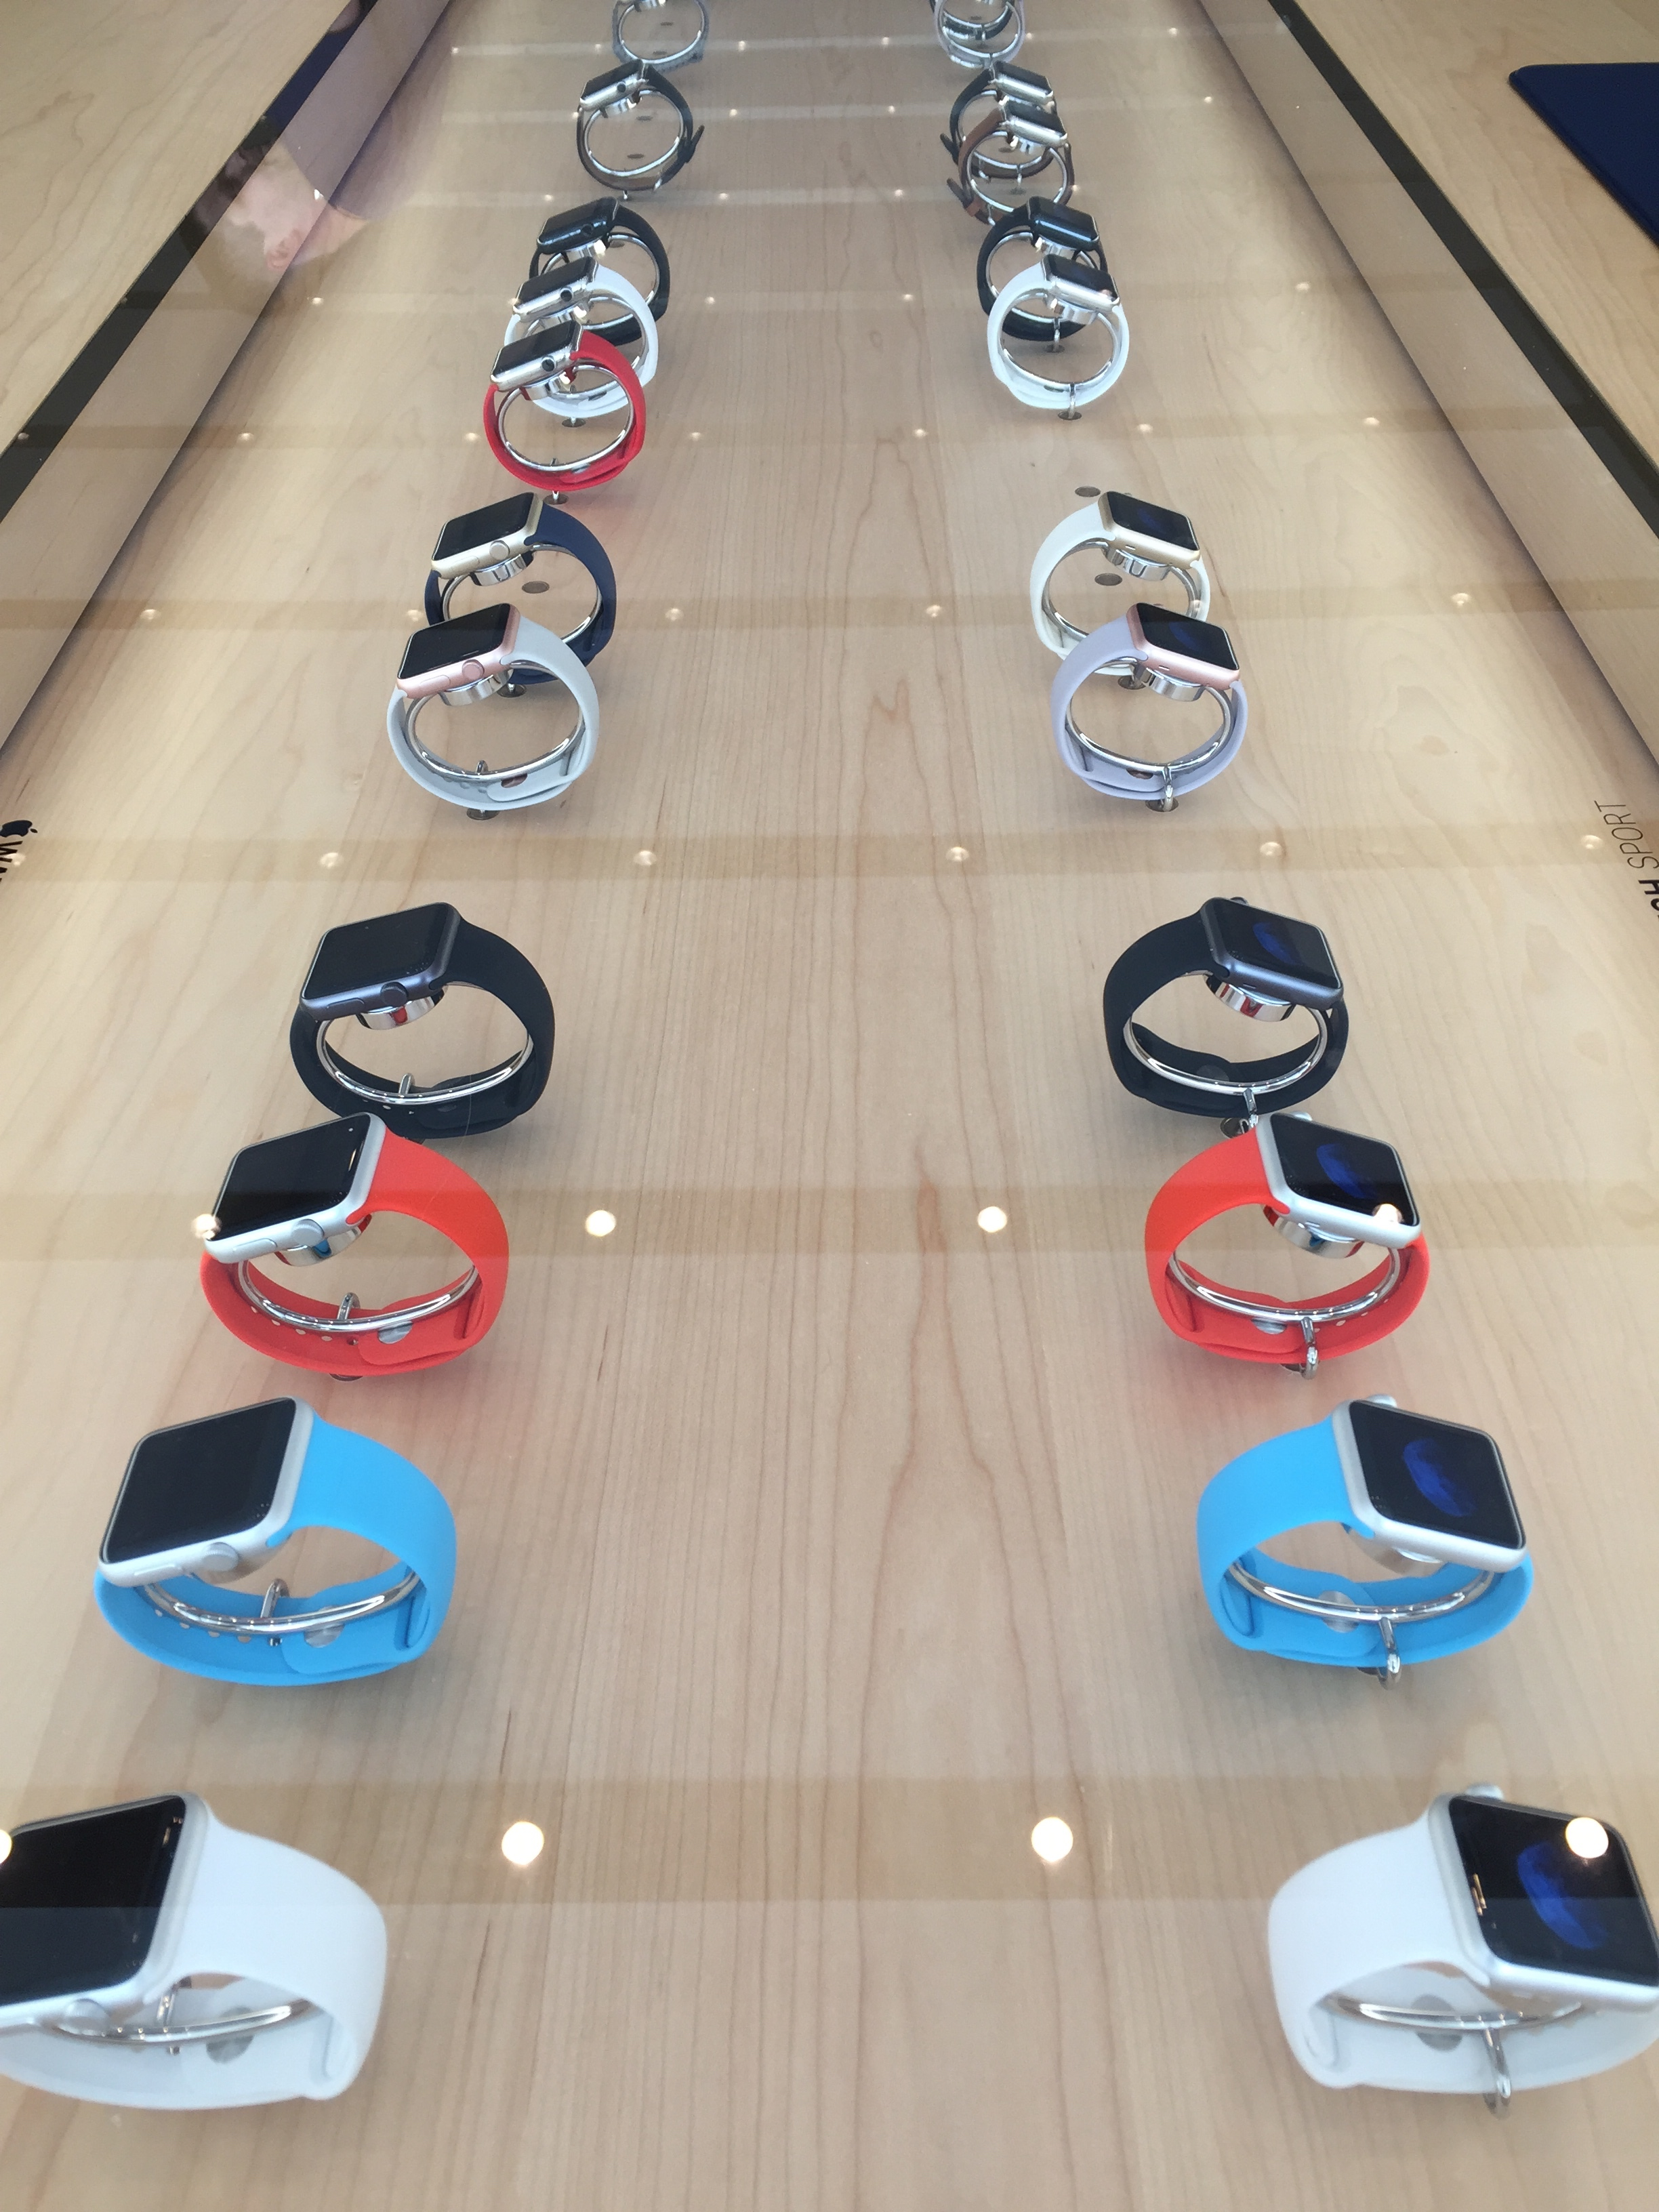 All of the new Apple Watch models on display, except for Hermès